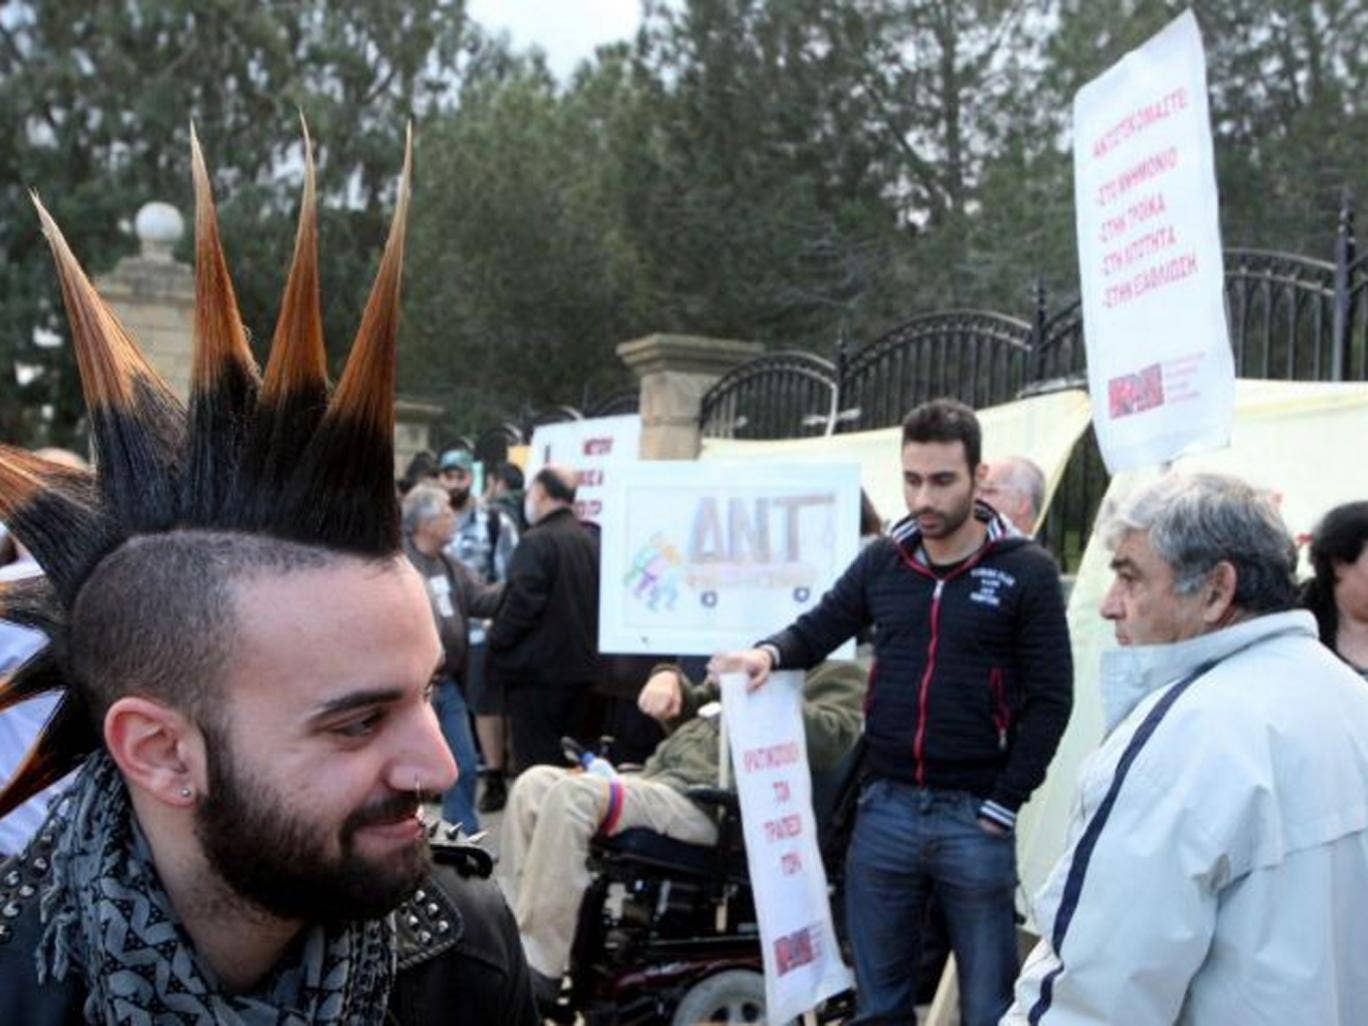 People gather outside the presidential palace to protest against the Eurogroup decision to impose losses on Cypriot bank deposits